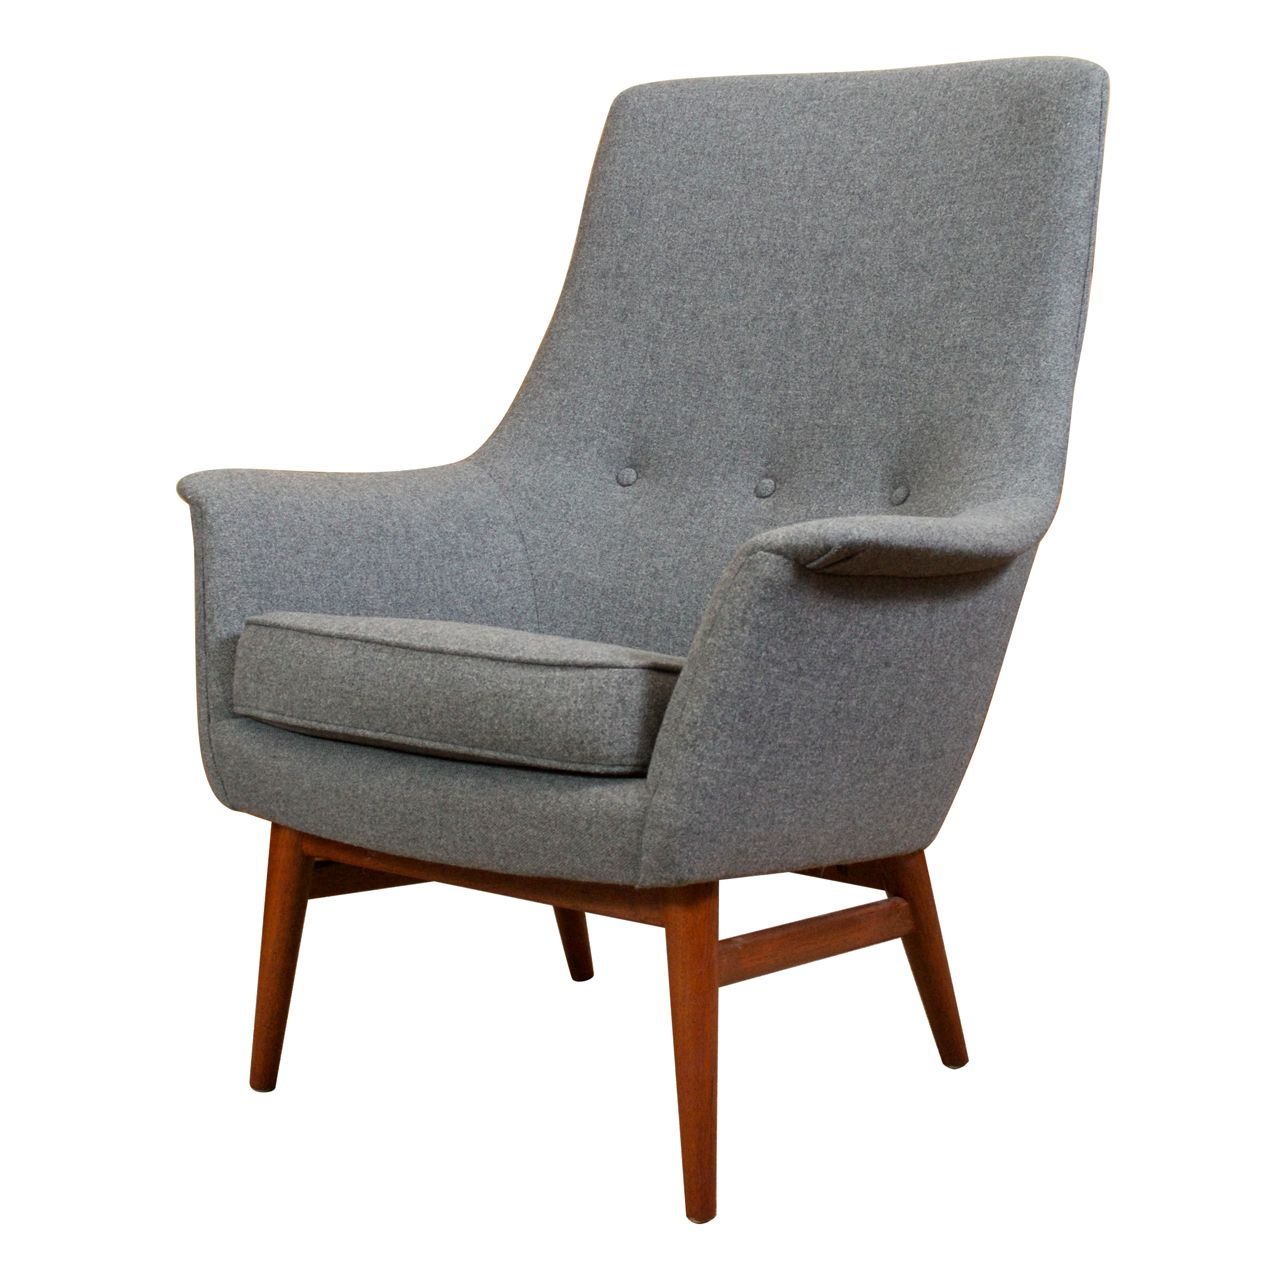 danish modern lounge chair modern lounge danish and modern. Black Bedroom Furniture Sets. Home Design Ideas